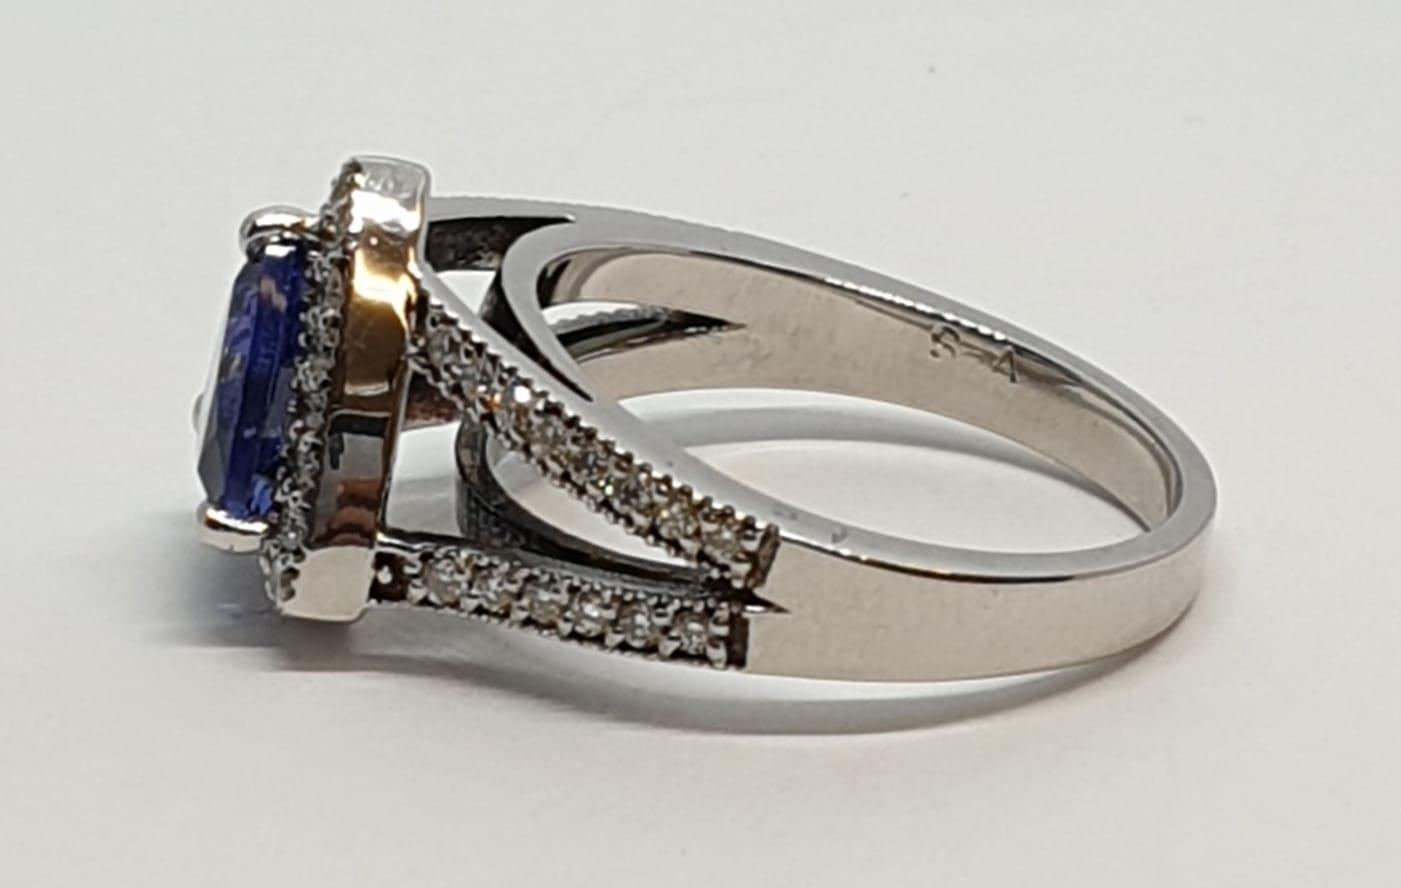 18CT WHITE GOLD RING WITH TRIANGULAR TANZANITE CENTRE AND DIAMONDS ON SHOULDERS, WEIGHT 7G AND - Image 6 of 10